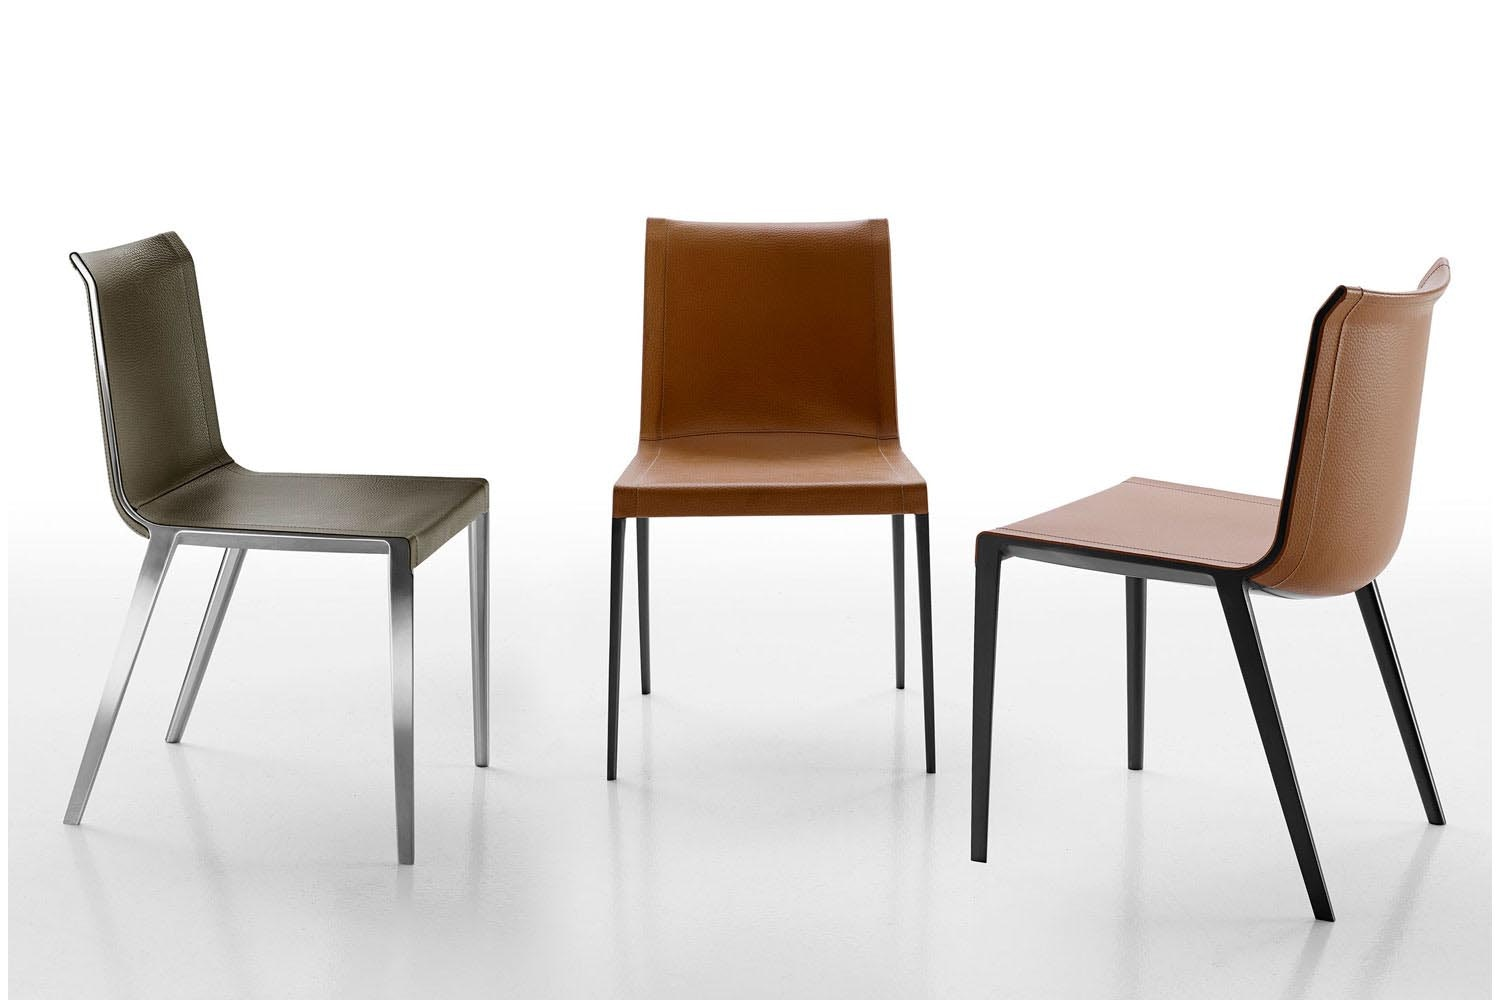 Charlotte Chair by Antonio Citterio for B&B Italia